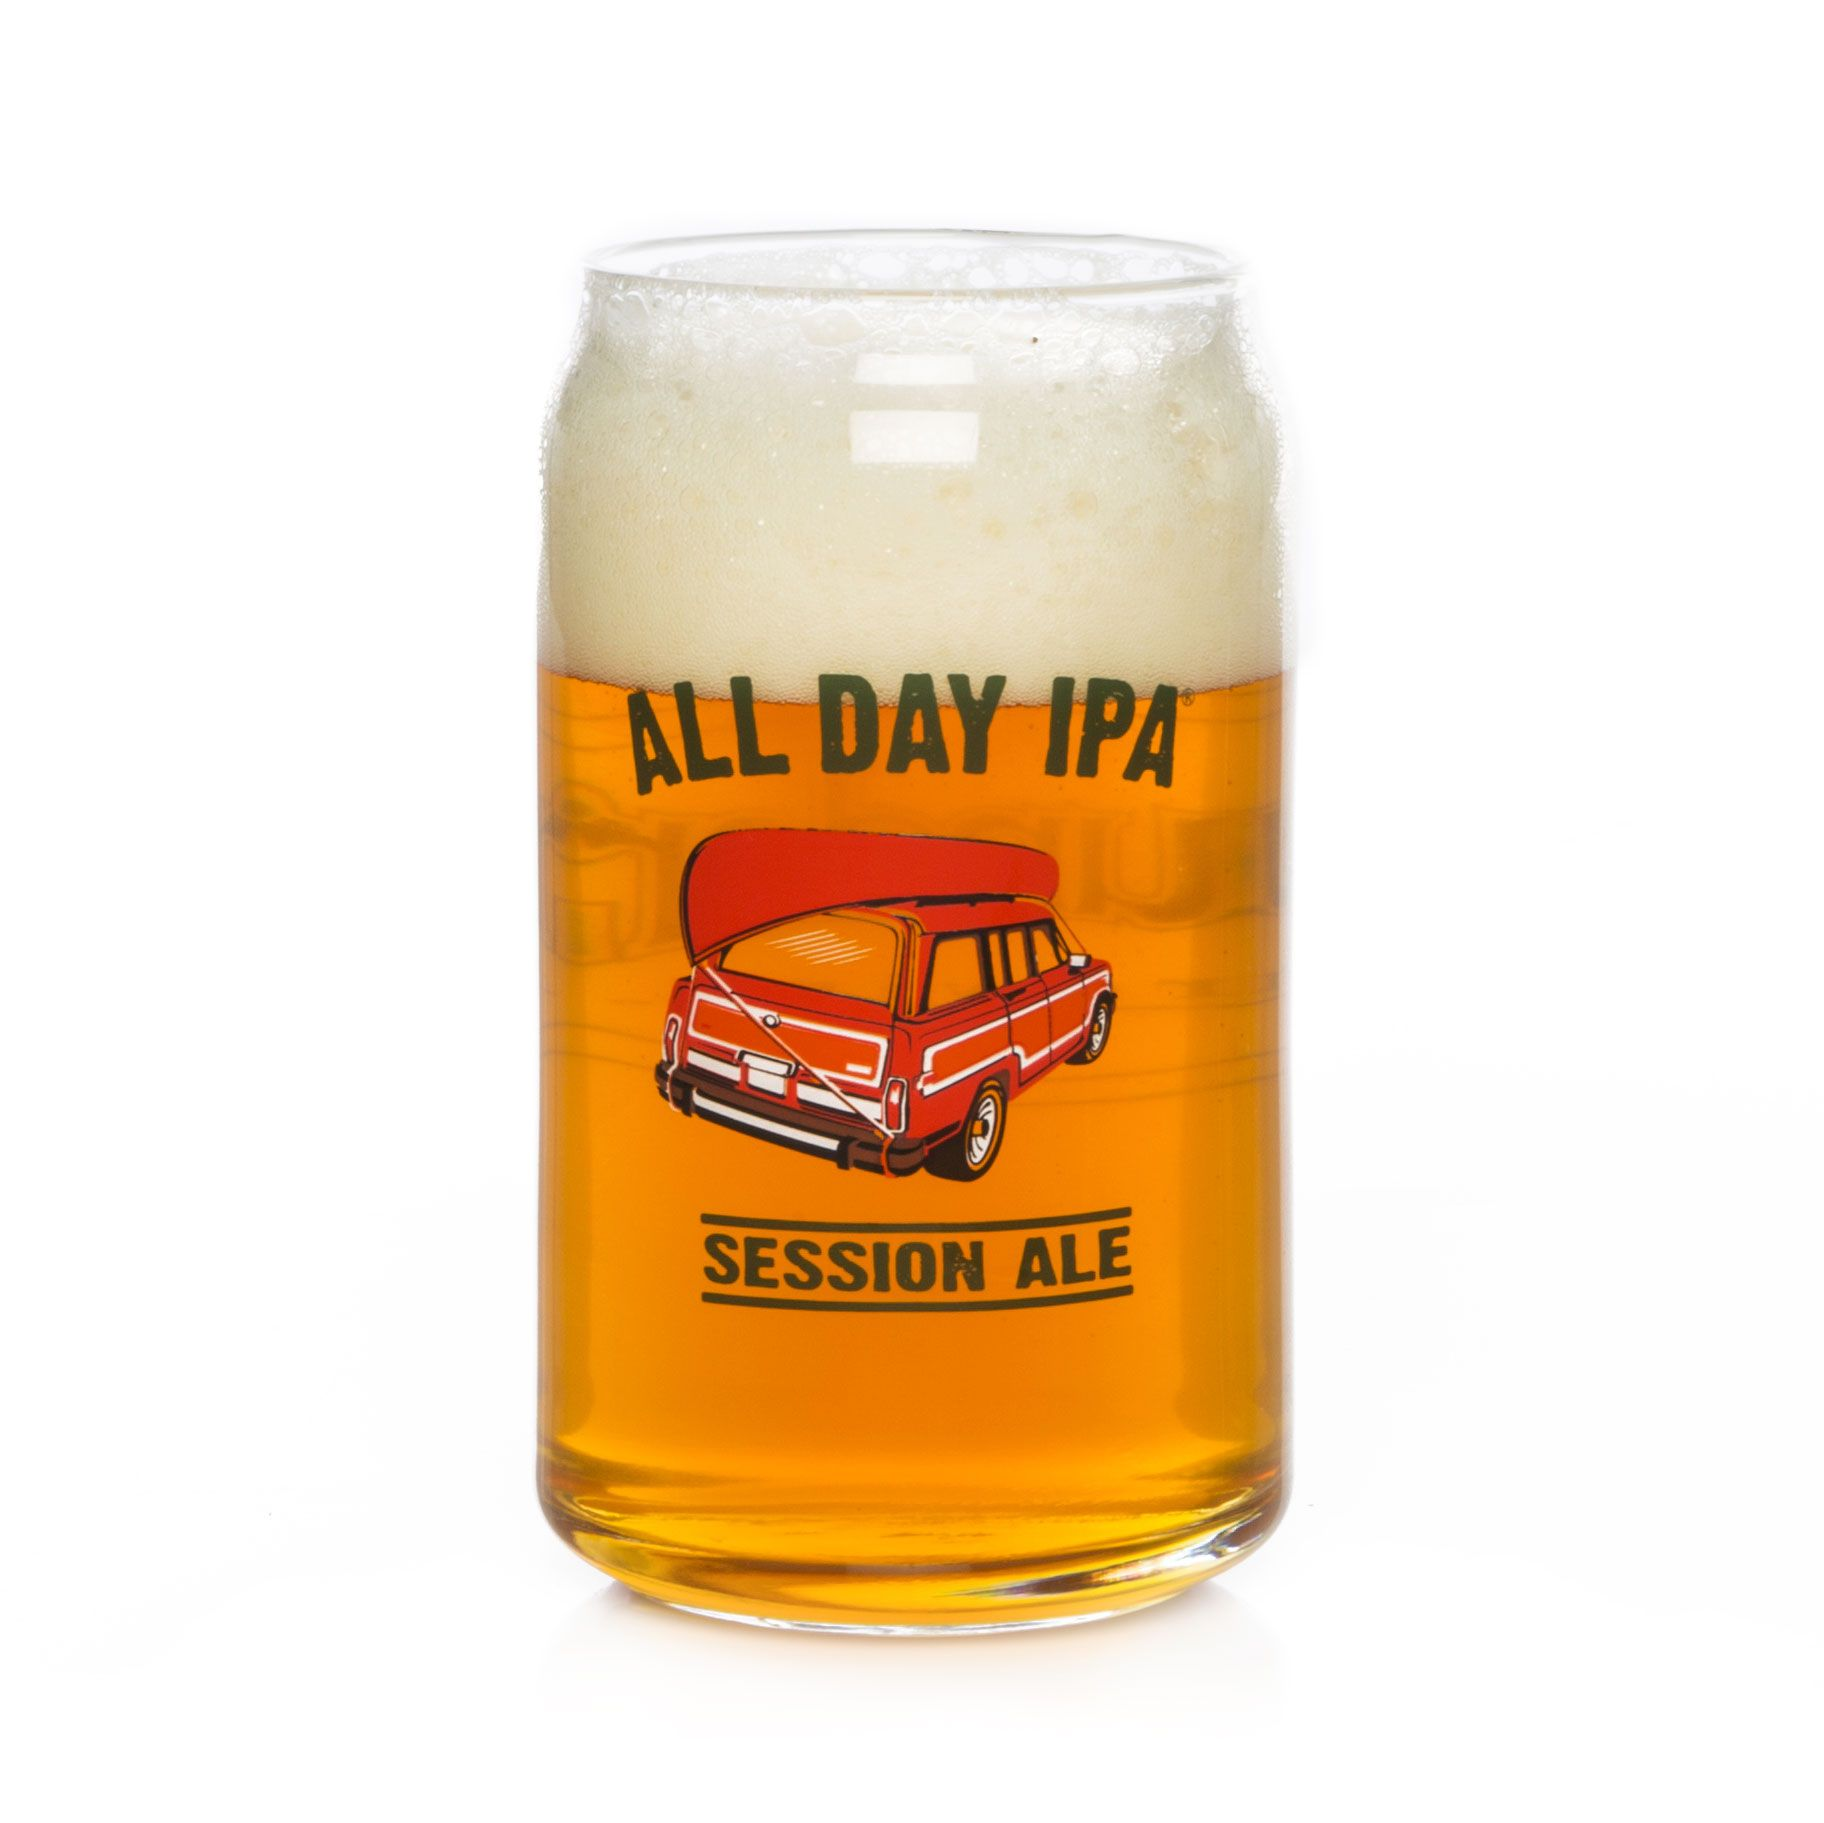 Founders All Day IPA glass